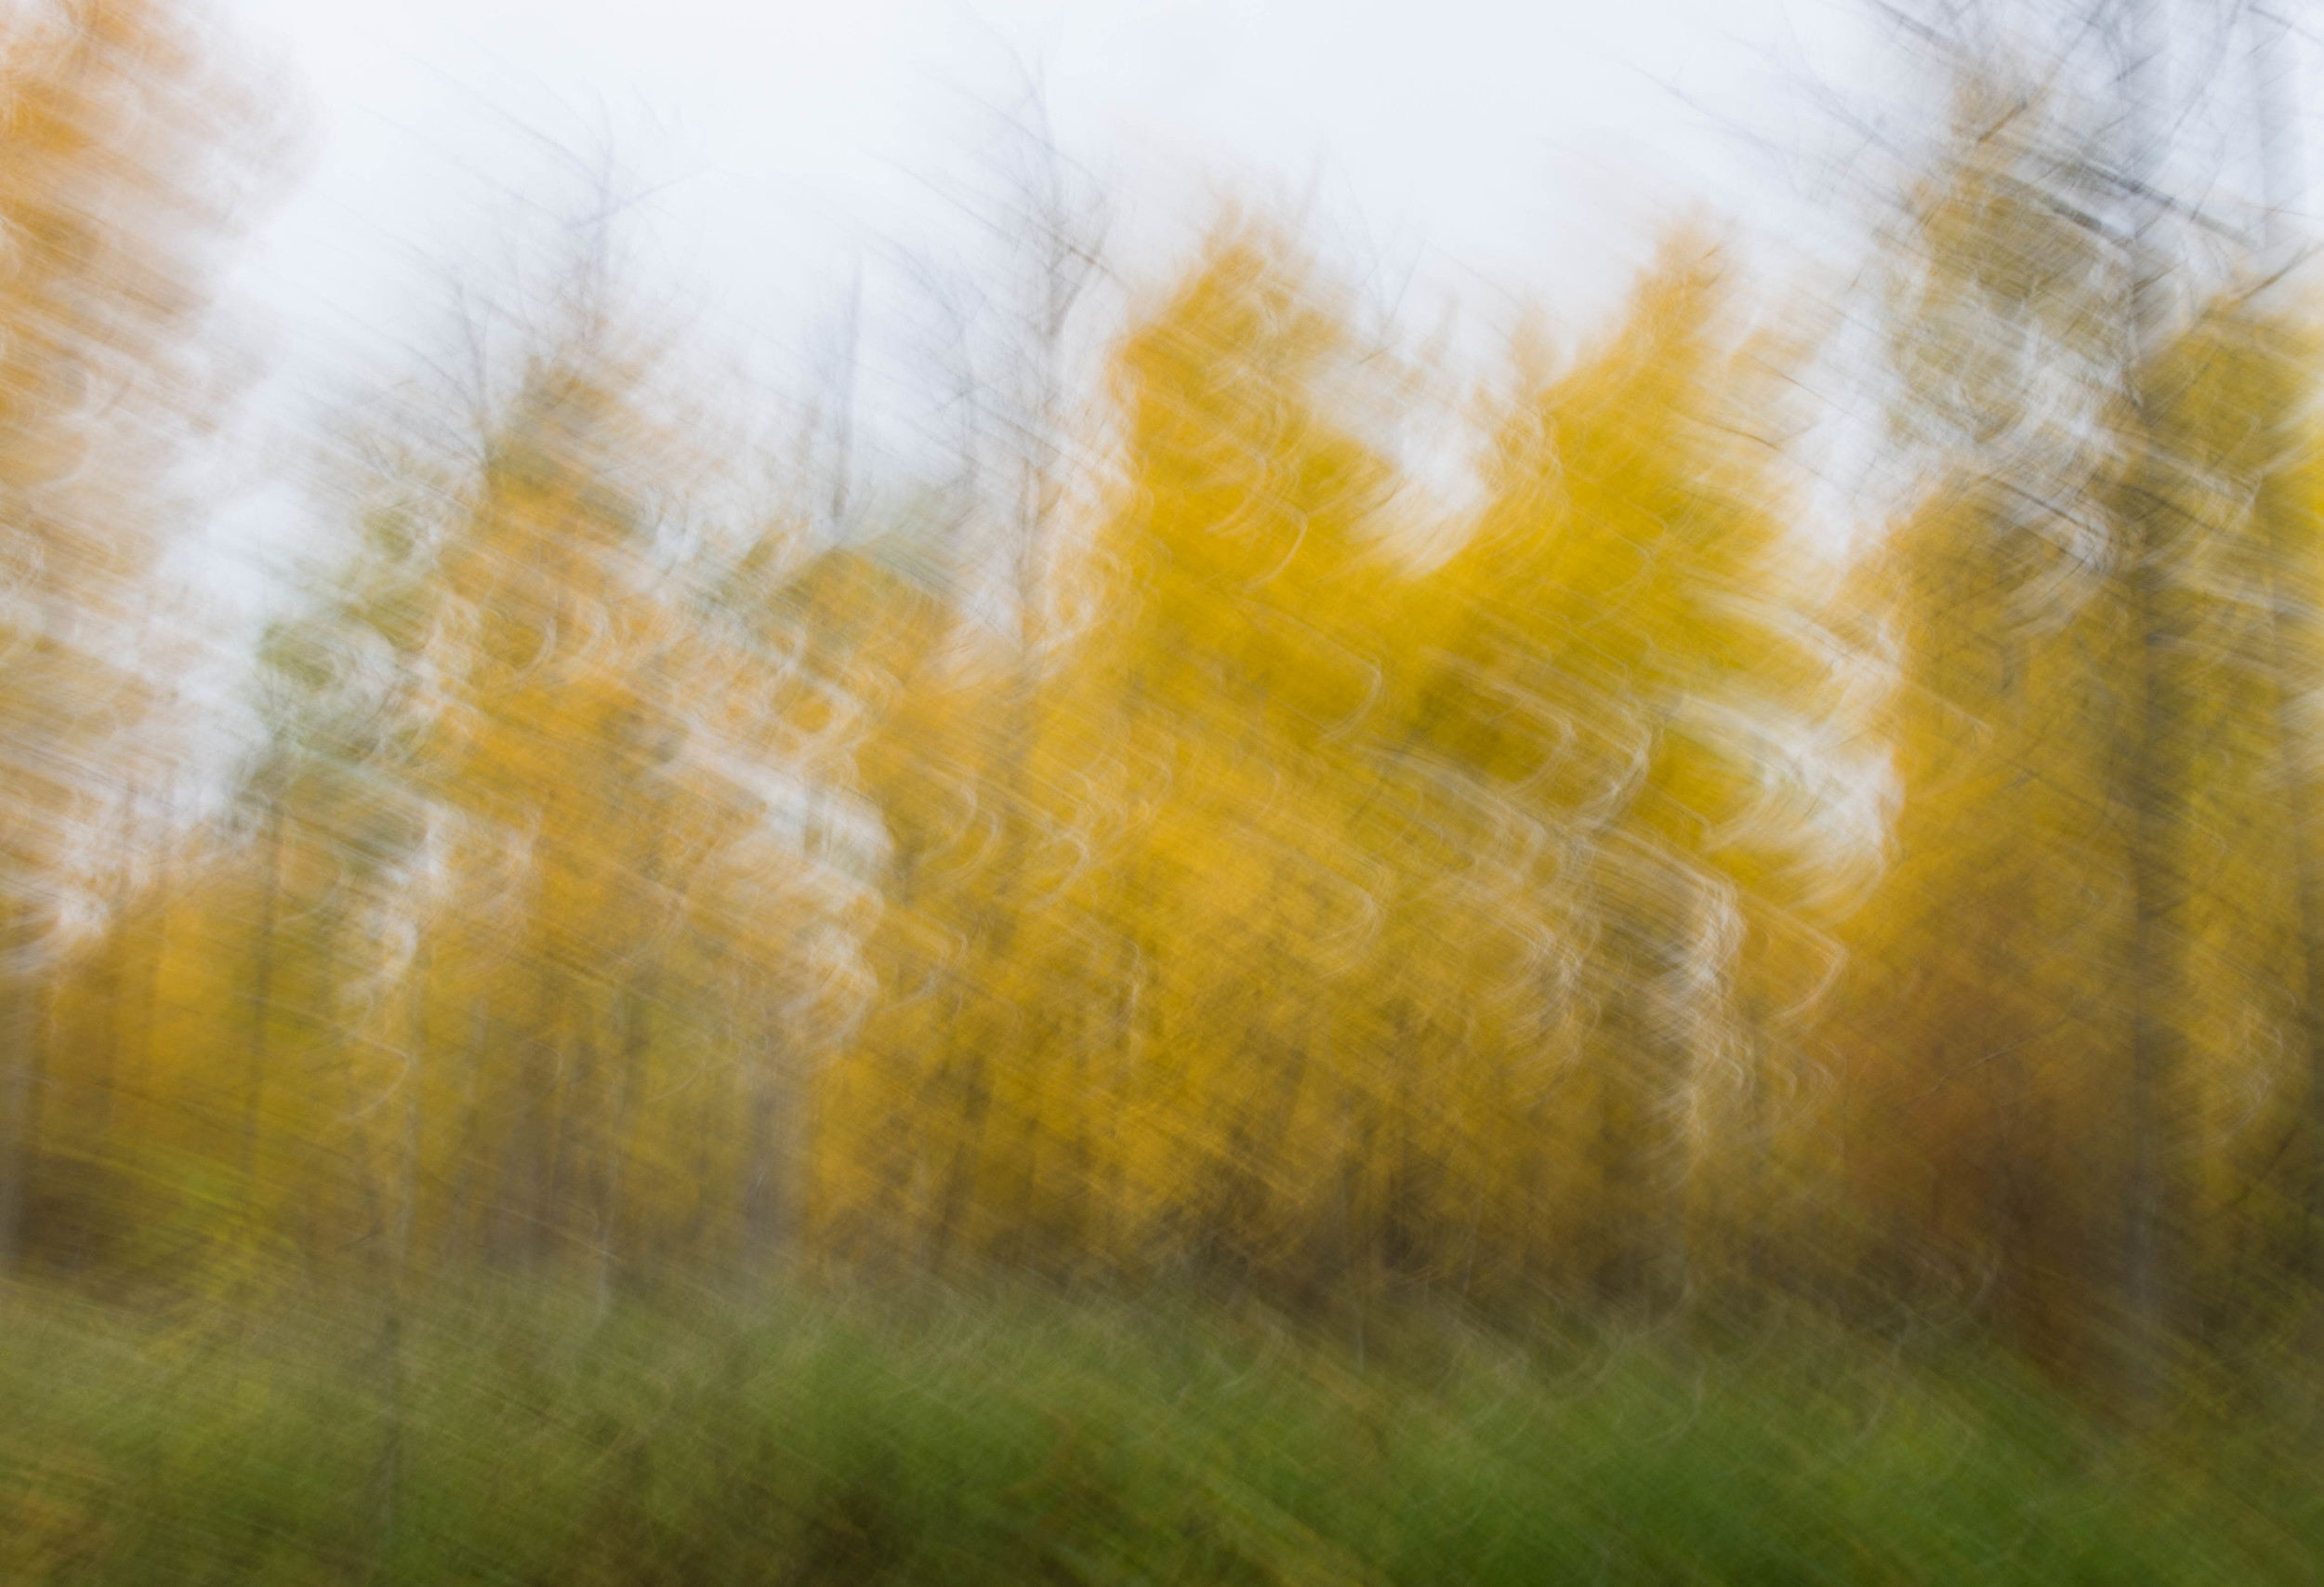 Trees (abstract) by Steve Ricketts